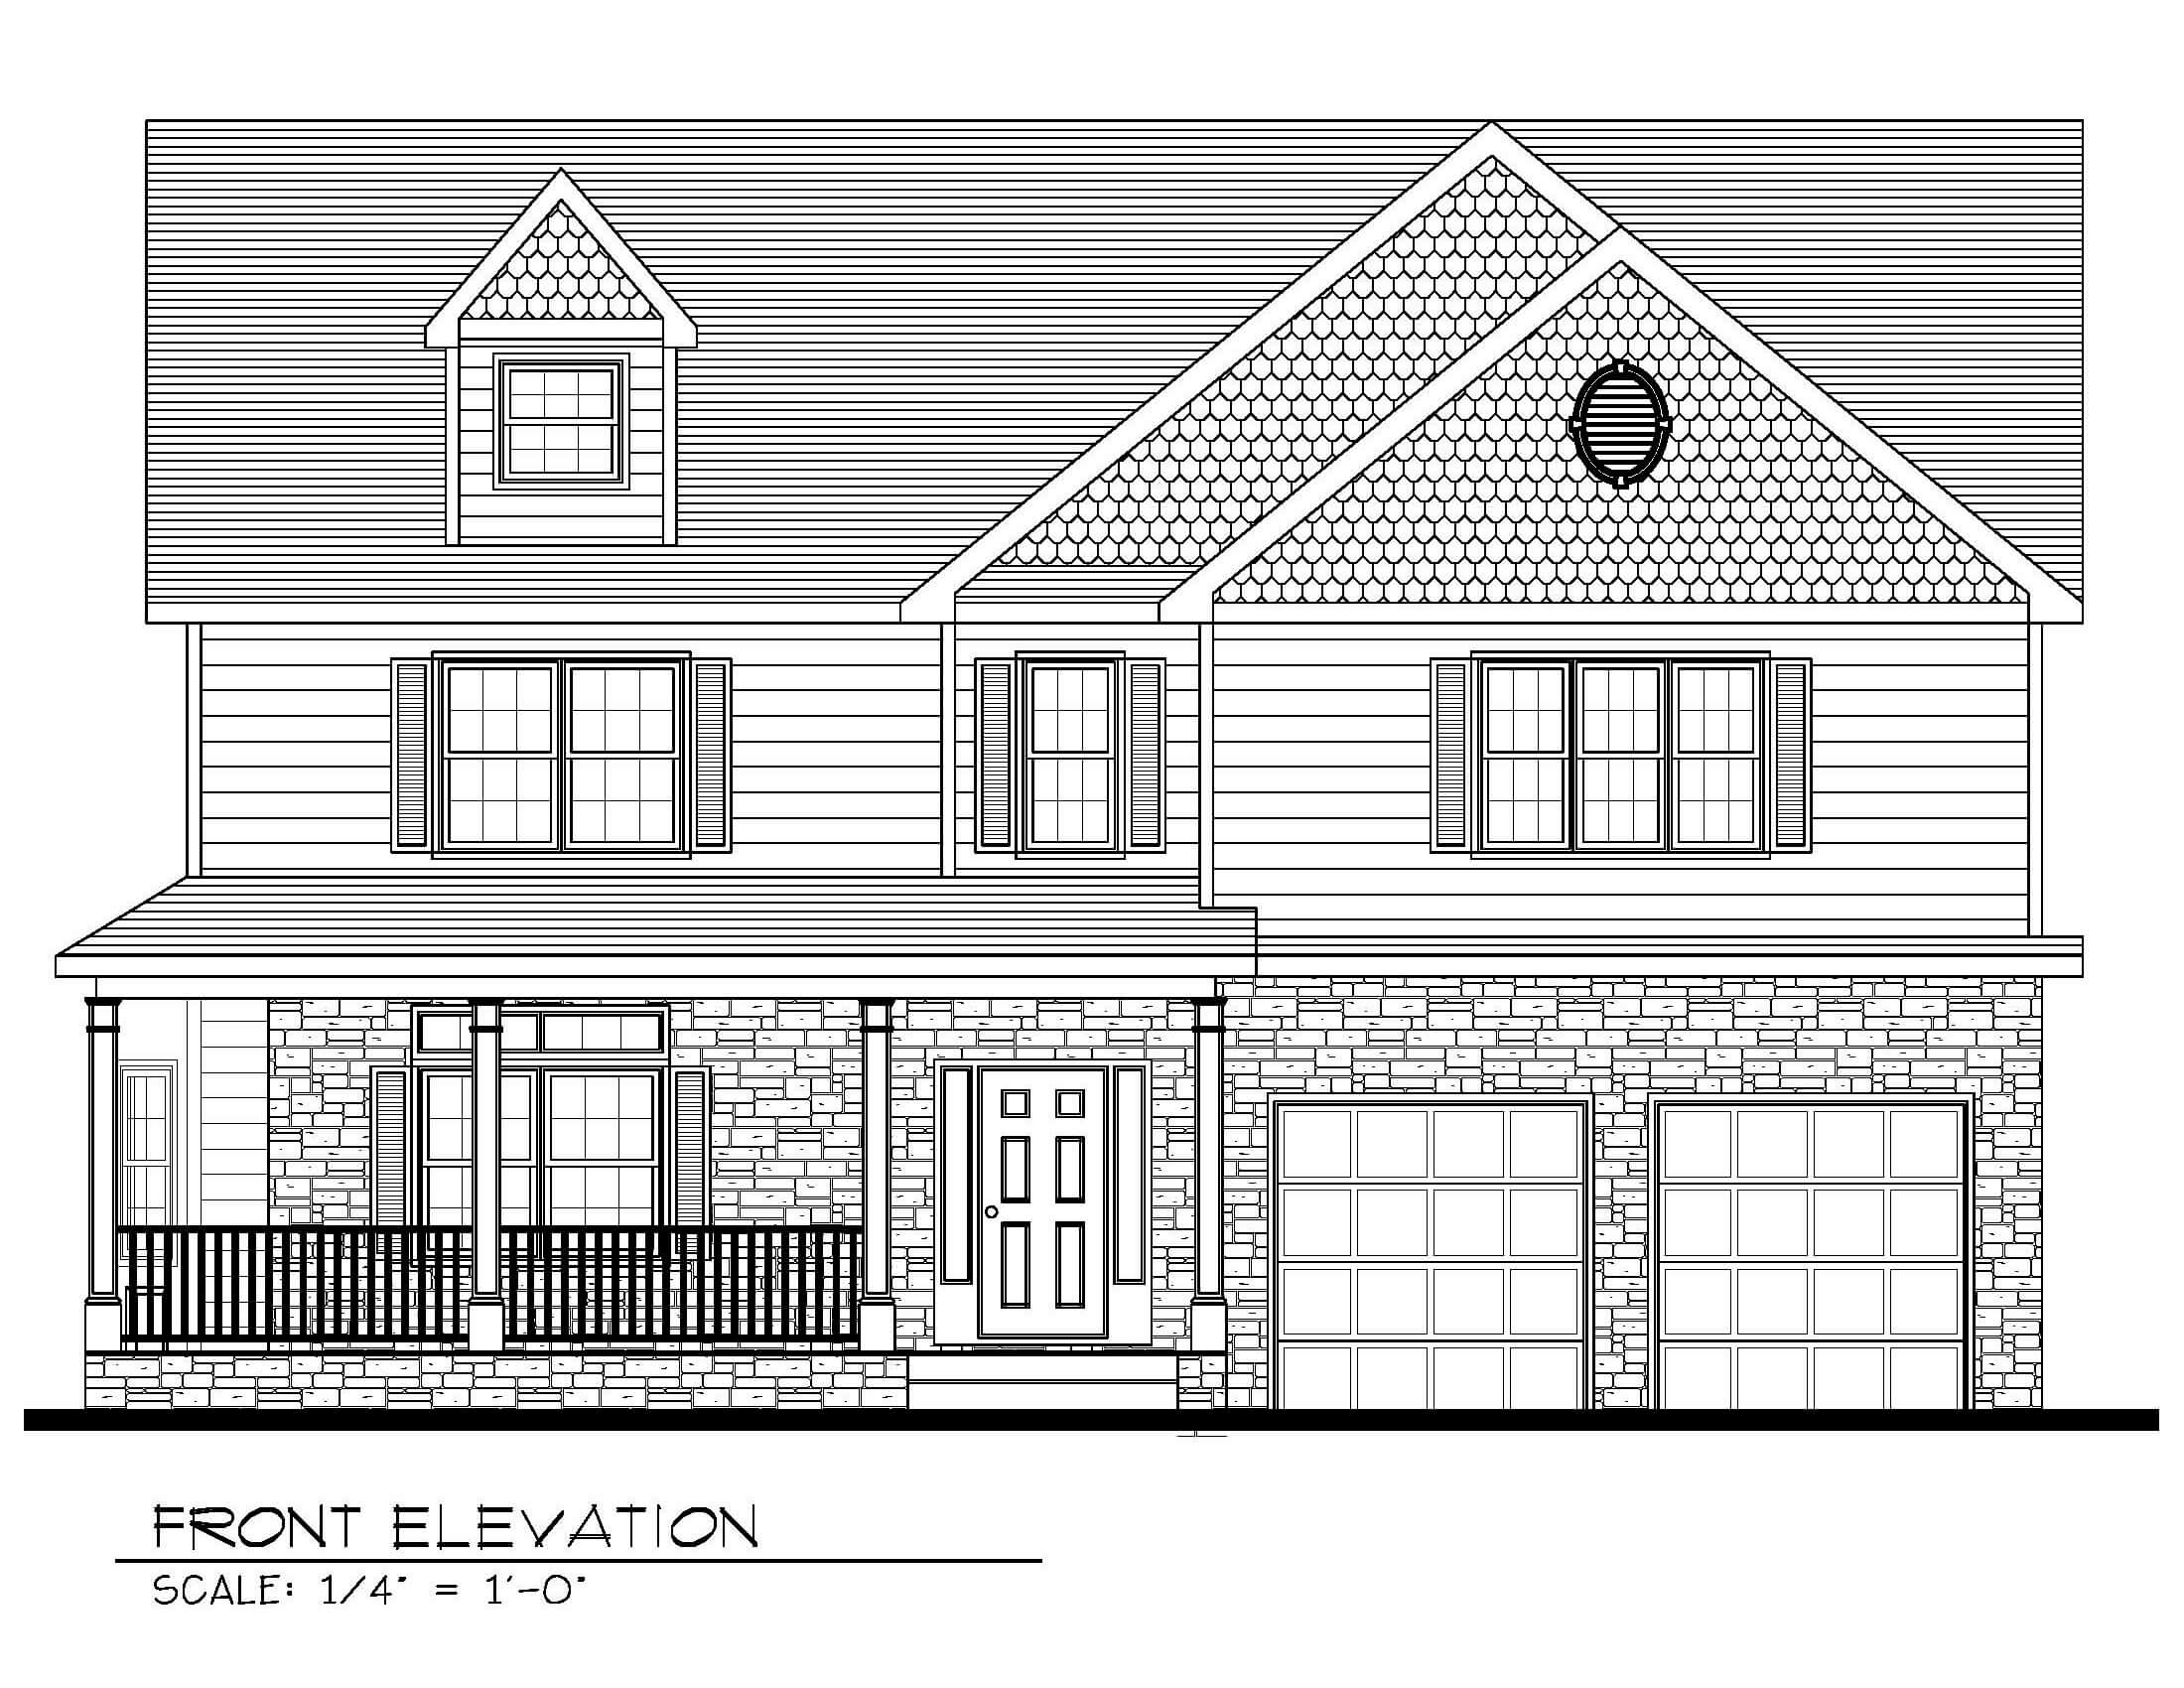 129 Brightwood Front Elevation B&W